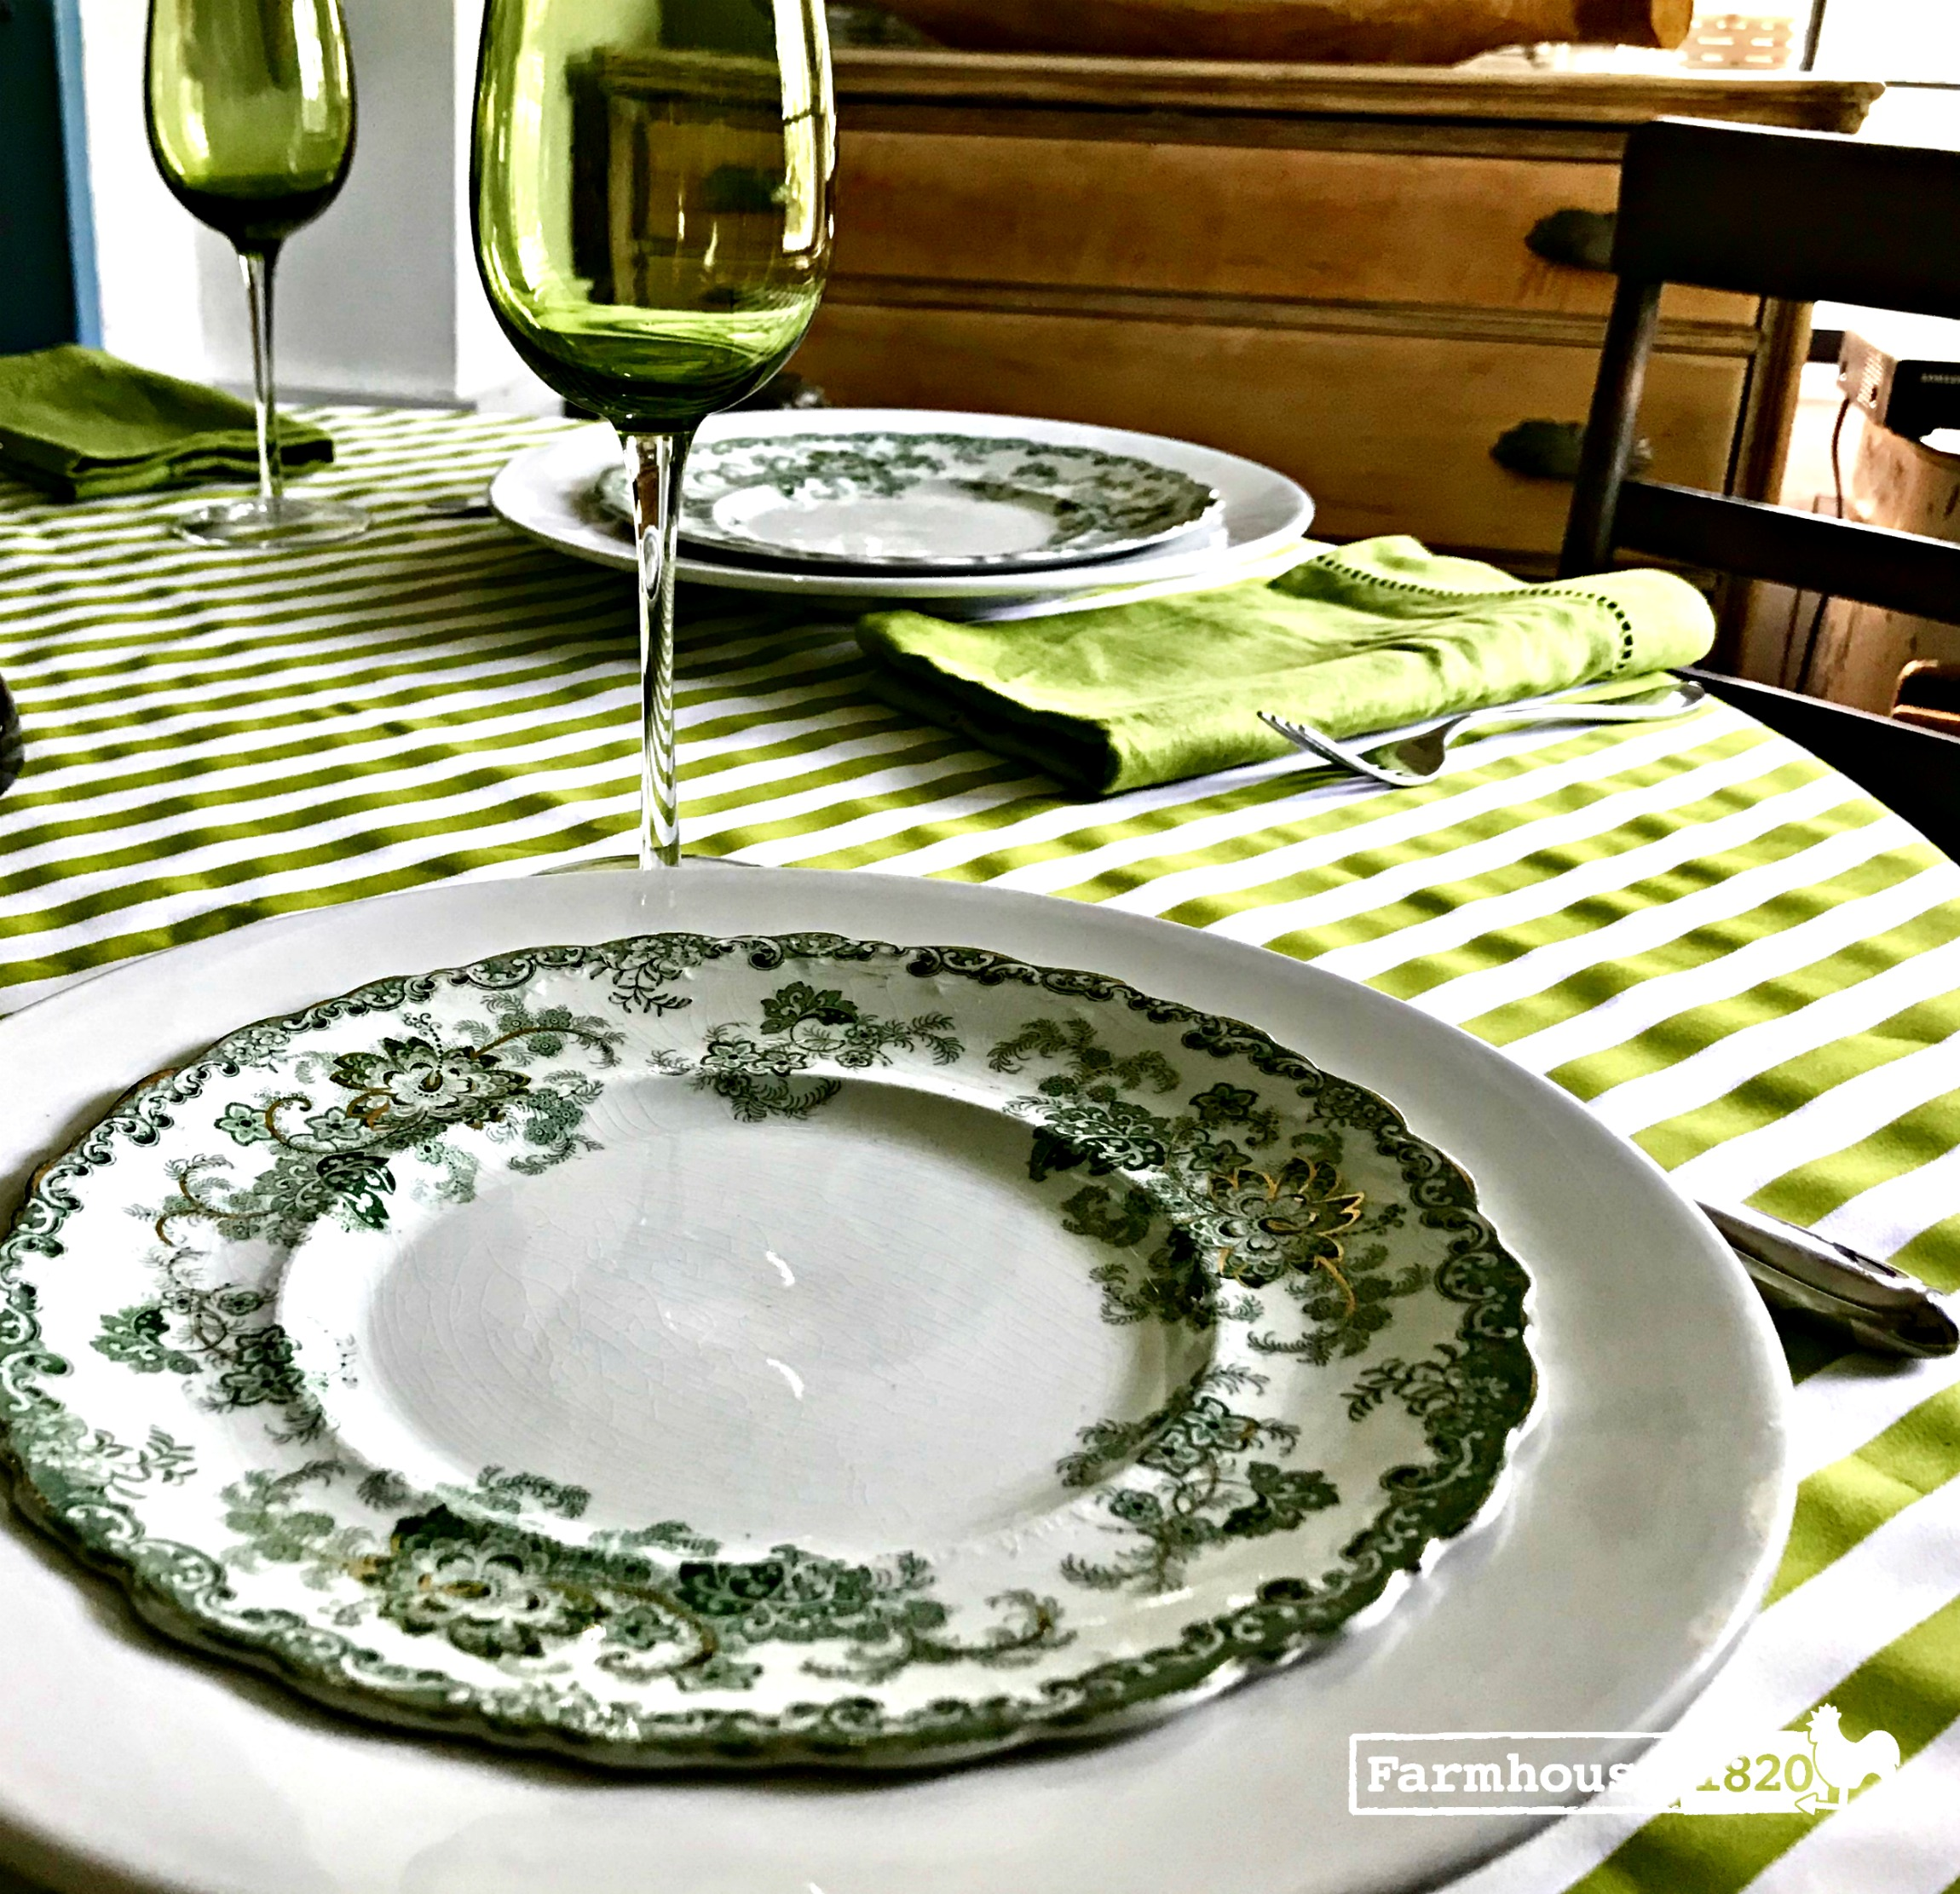 CLFair finds 2018 - a gorgeous green transferware placesetting